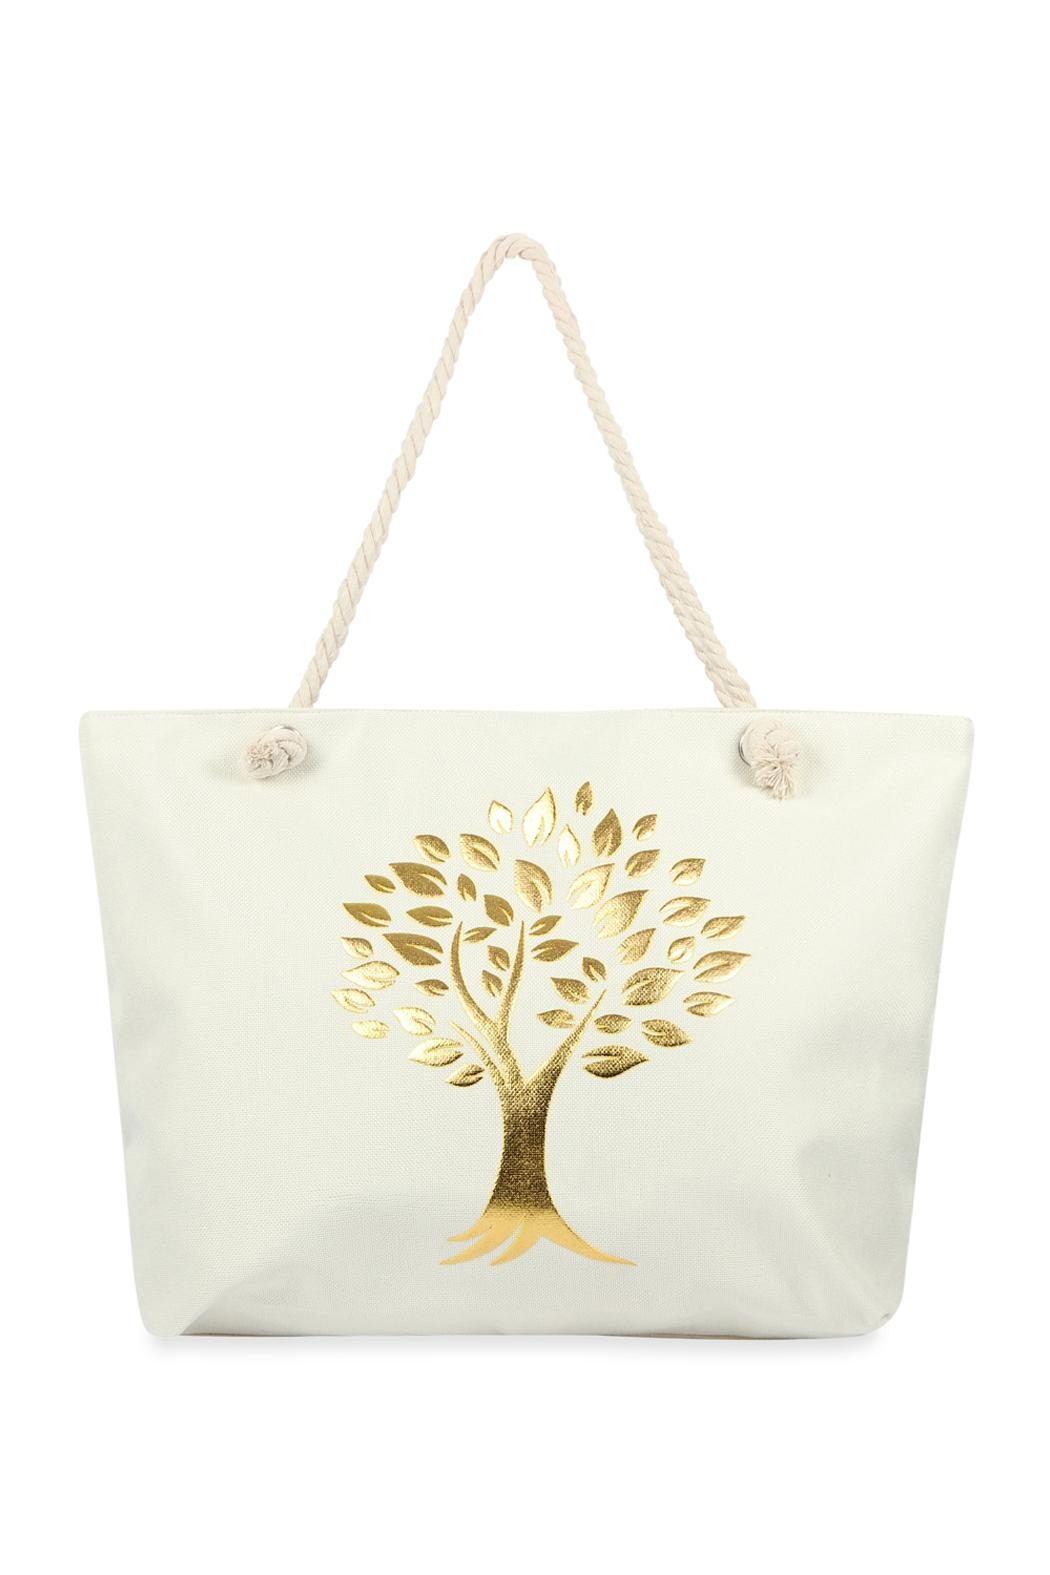 Riah Fashion Gold Printed Tree Tote Bags - Front Cropped Image